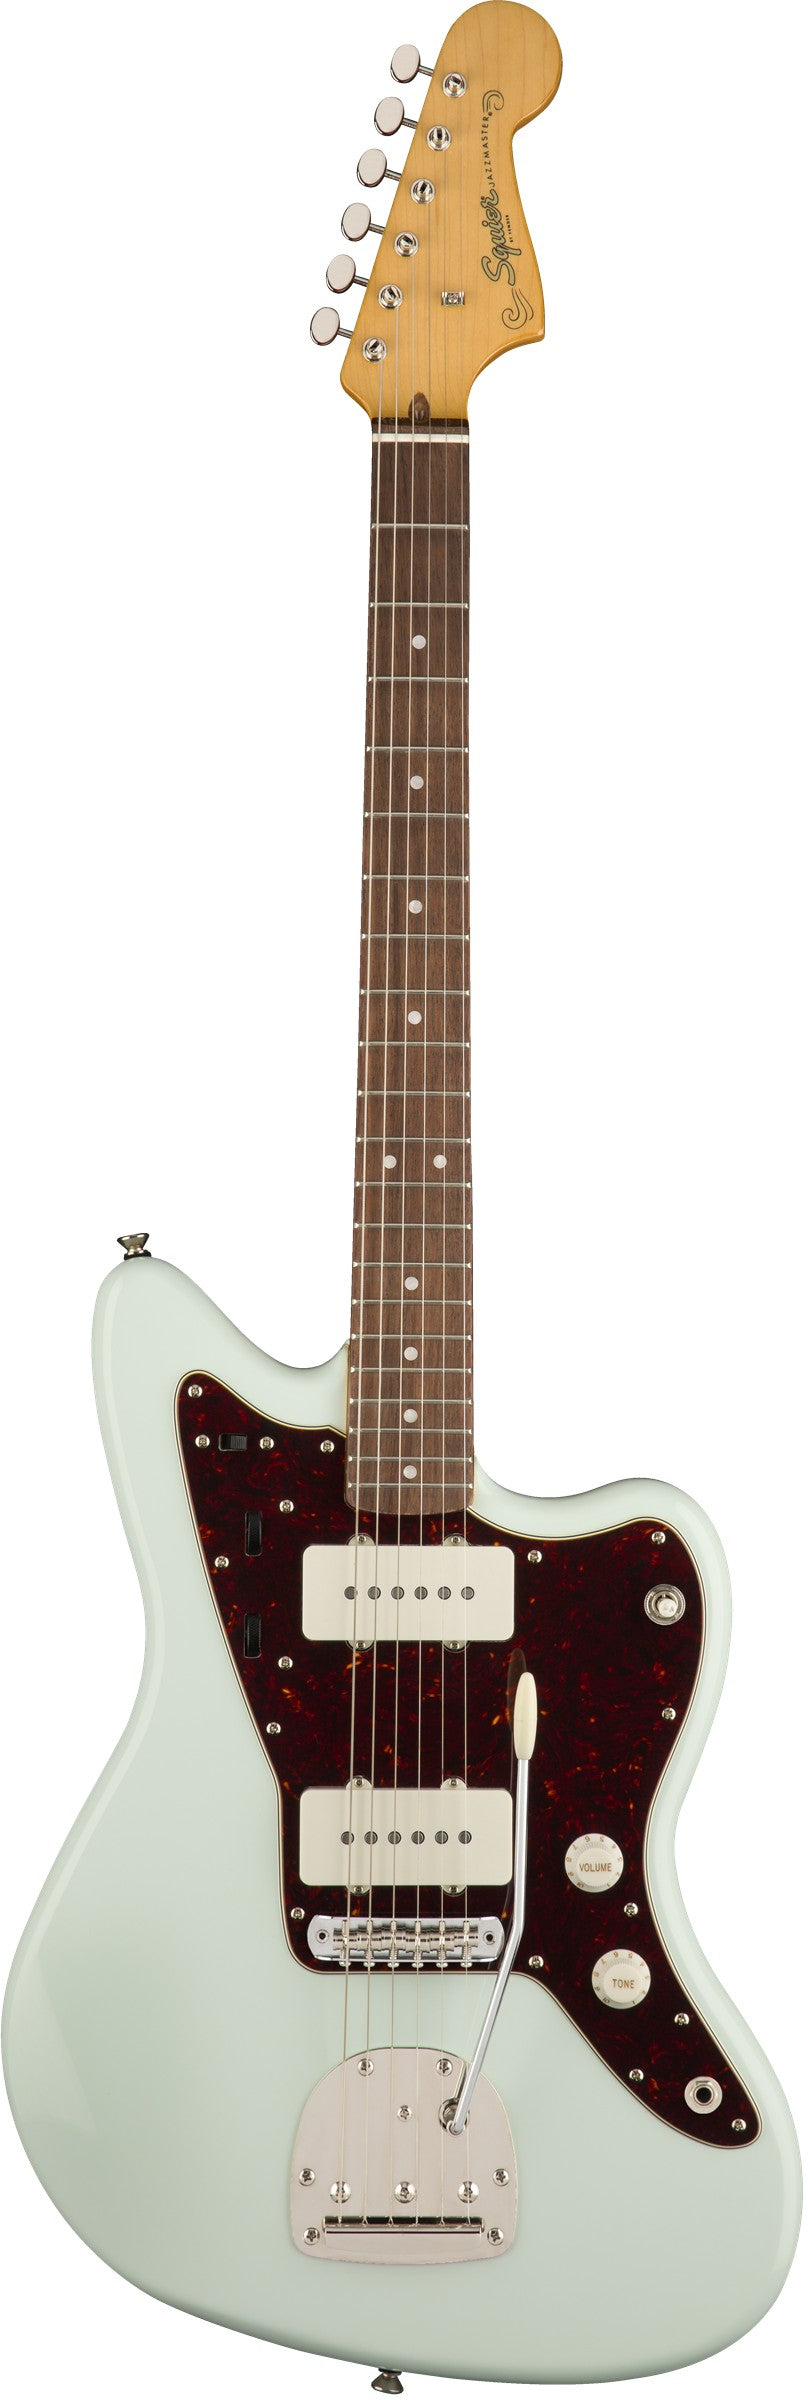 Squier Classic Vibe '60S Jazzmaster Electric Guitar, Laurel Fingerboard